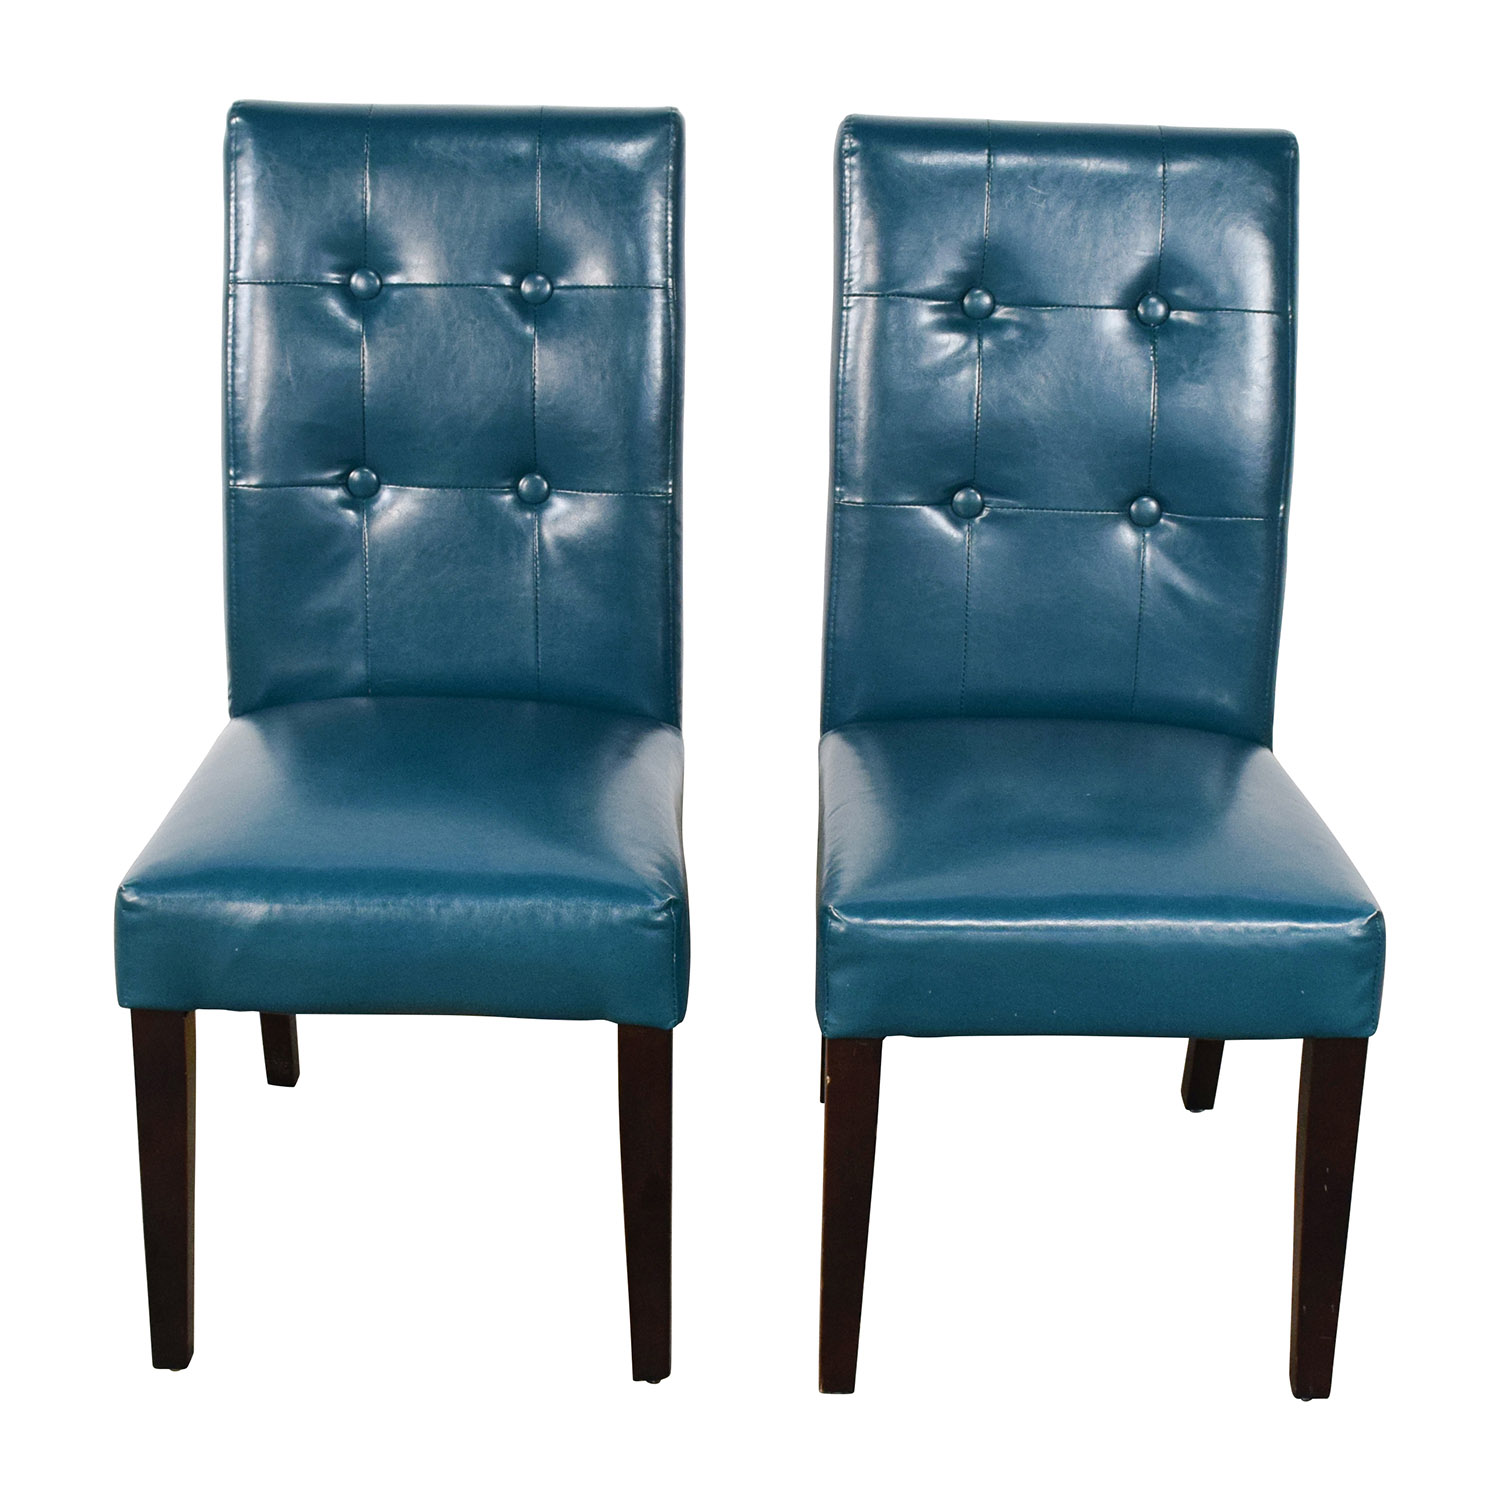 Pir 1 Imports Mason Collection Teal Dining Chairs Pier 1 Imports